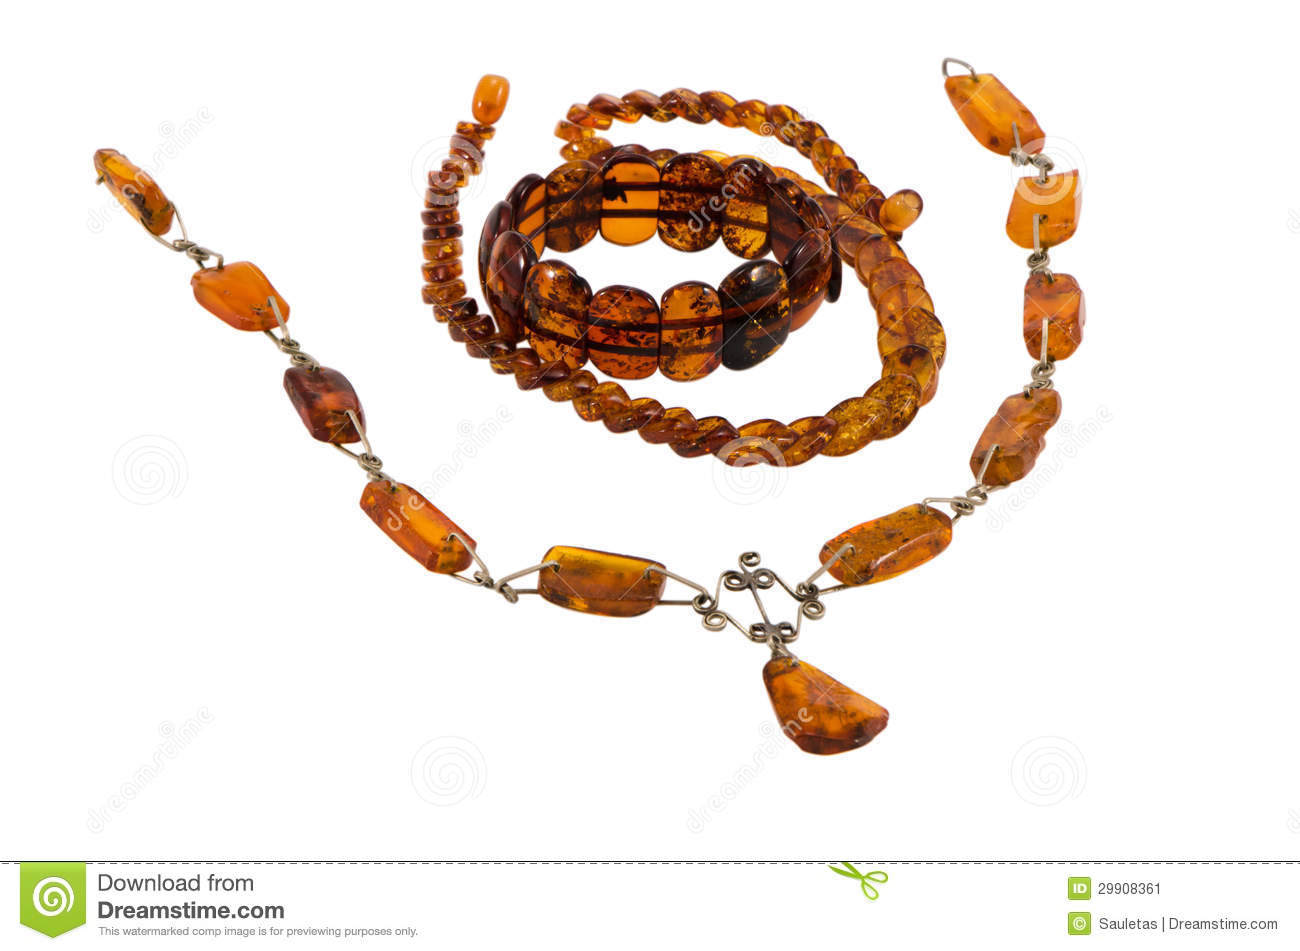 Baltic Amber Stone Jewelry Necklaces Bracelet Stock Image.